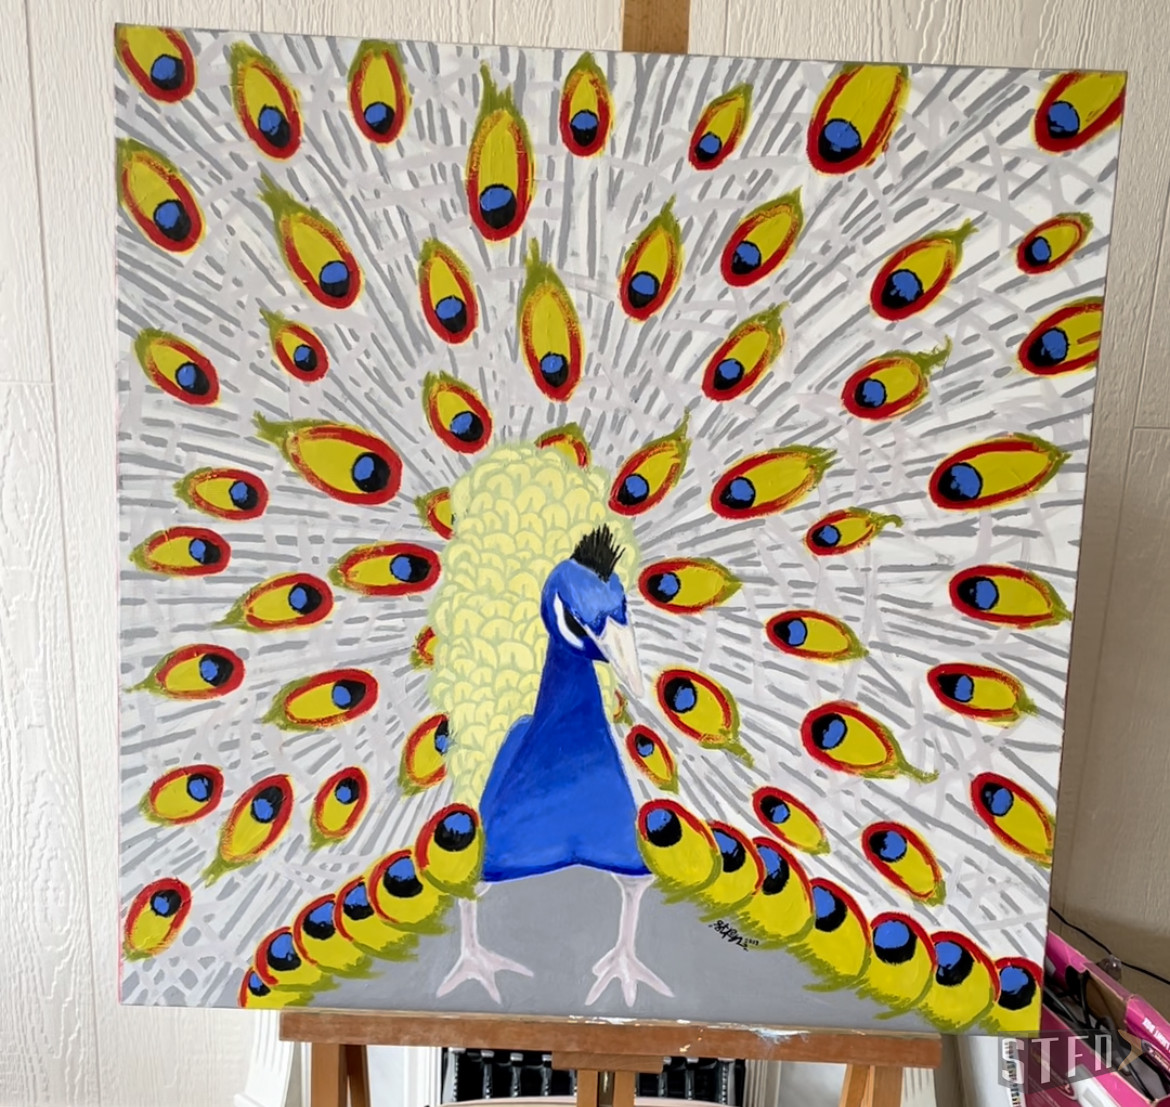 Painting-all-eyes-on-me